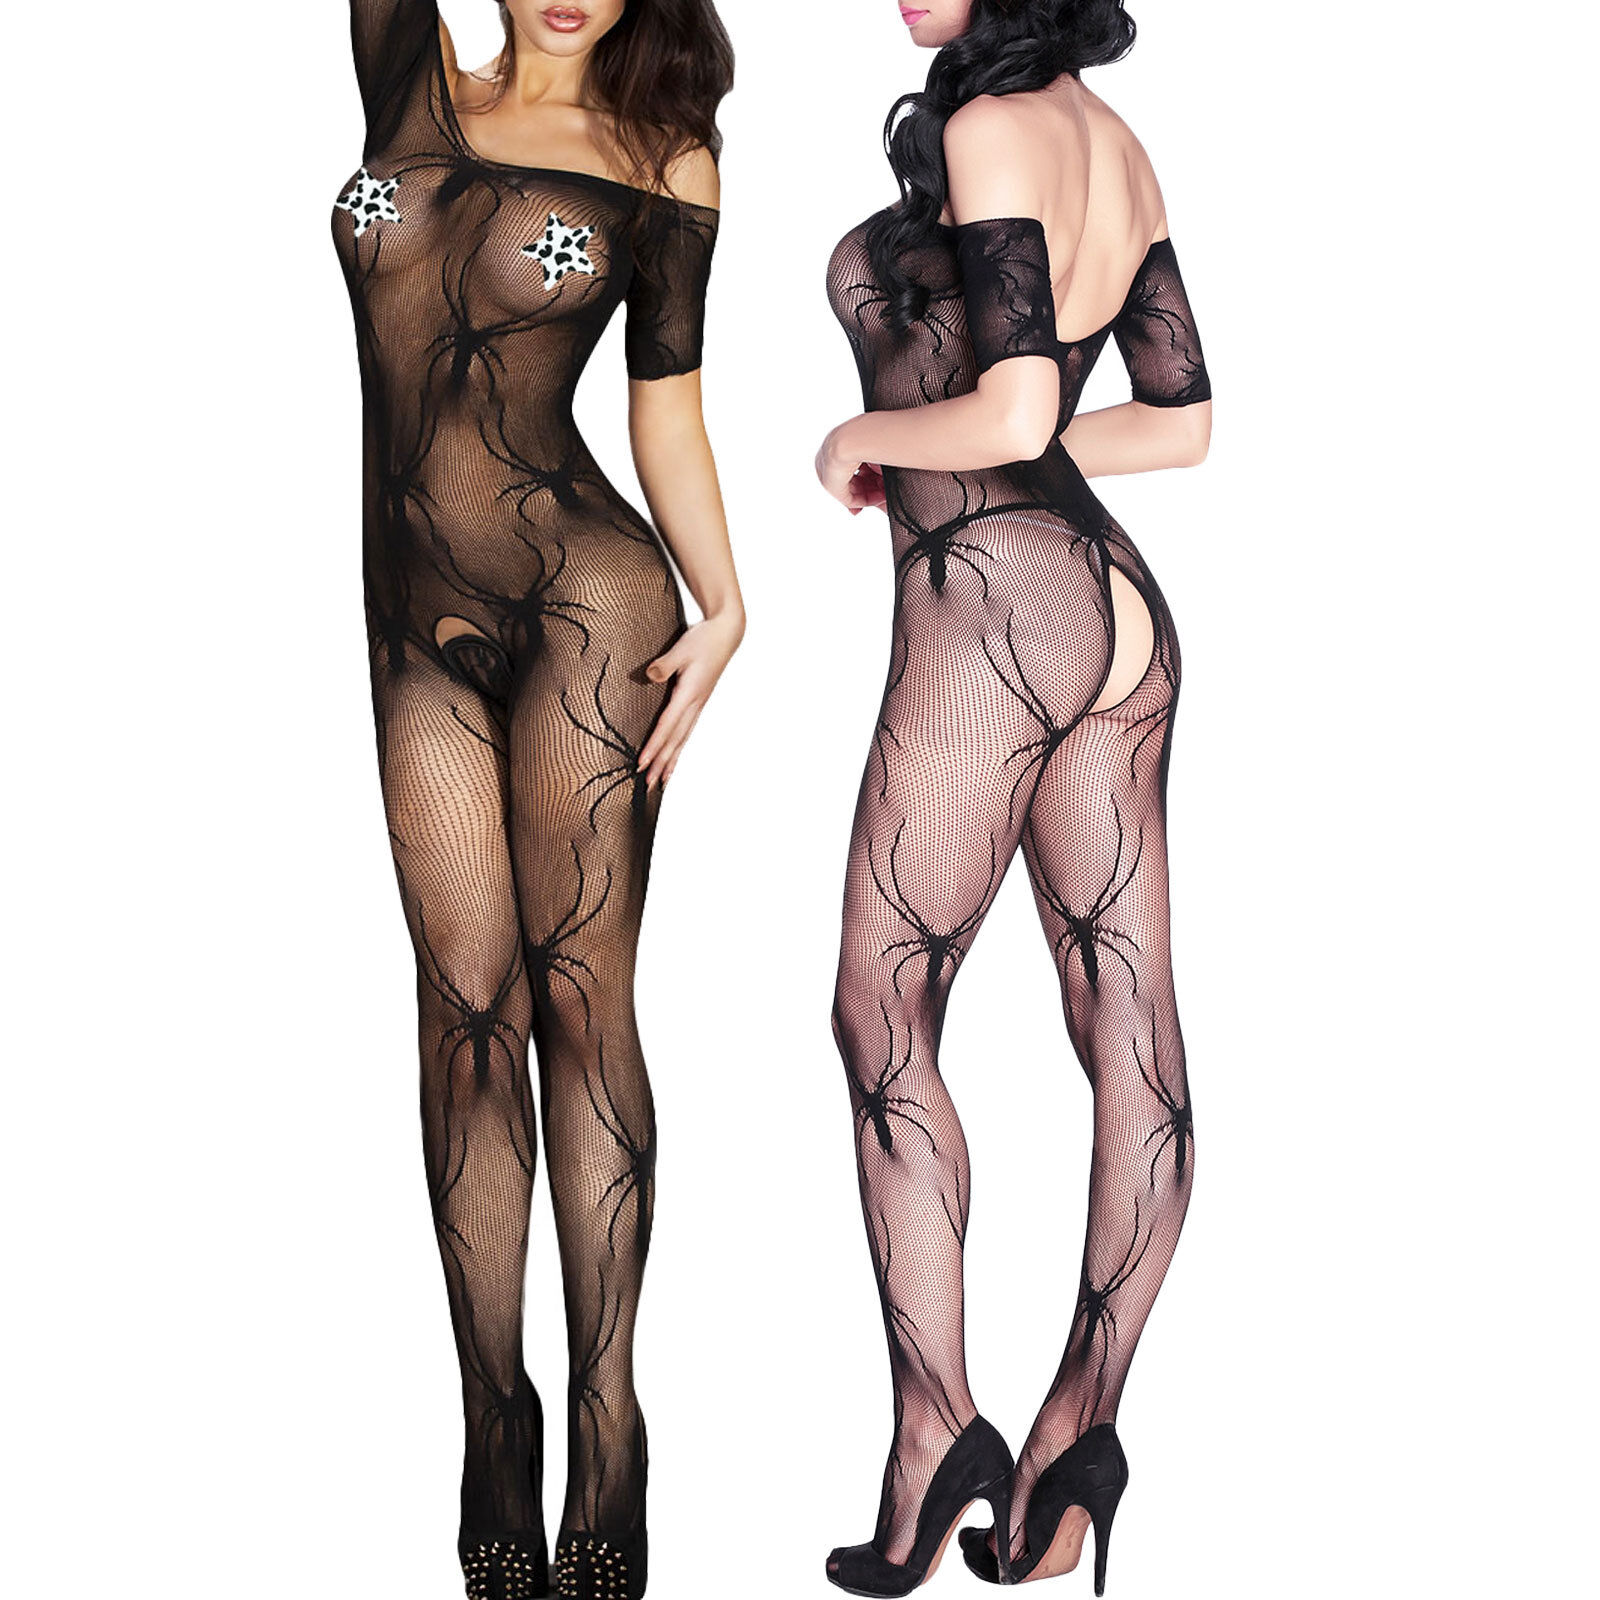 d44986d7143 Tutina donna intimo bodystocking catsuit crotchless pizzo sexy lingerie